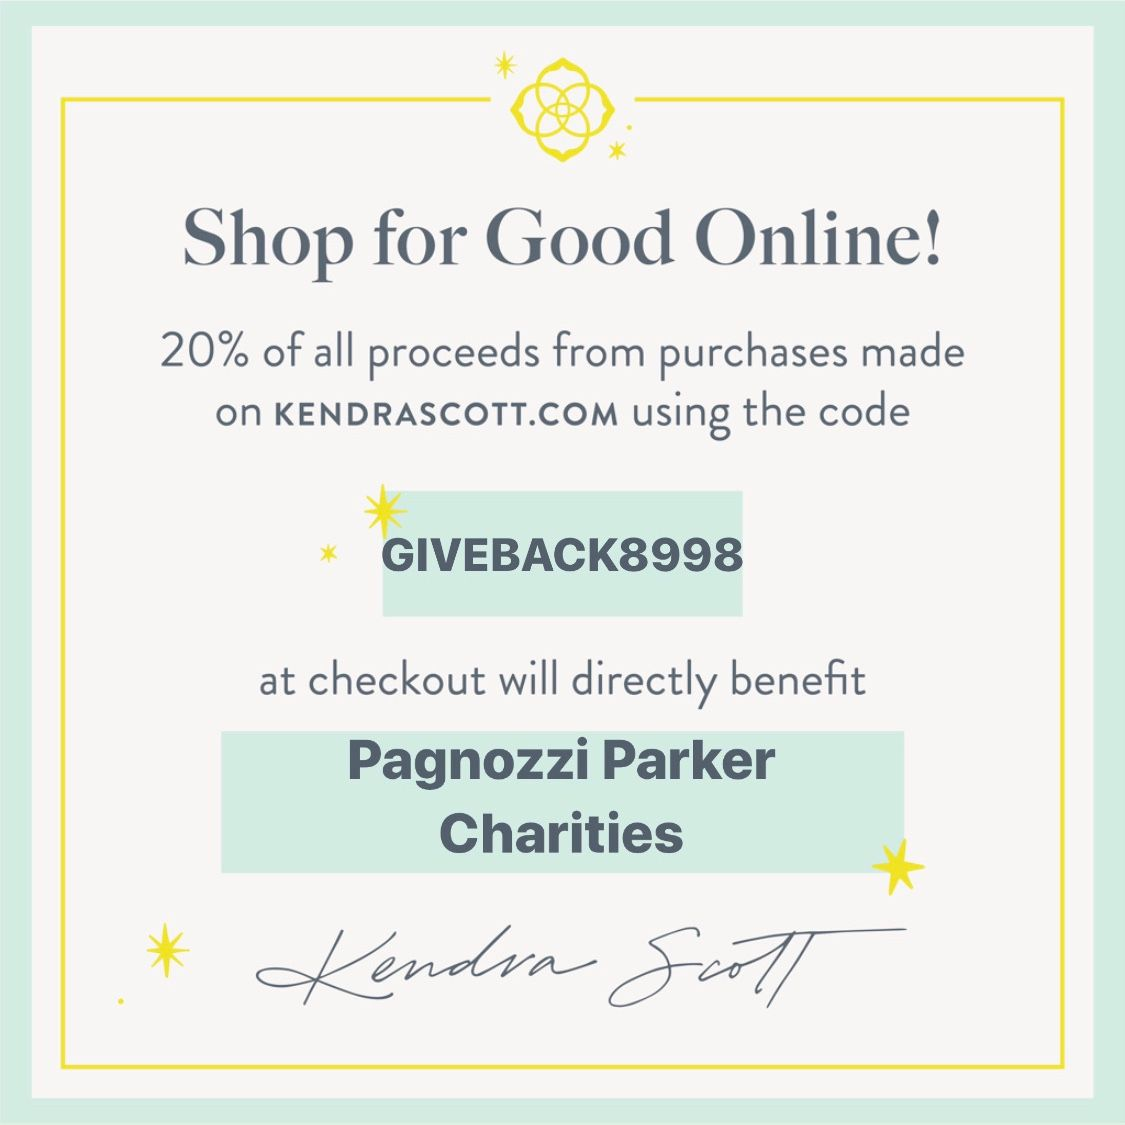 September 16-17: Shop for a Cause with Kendra Scott